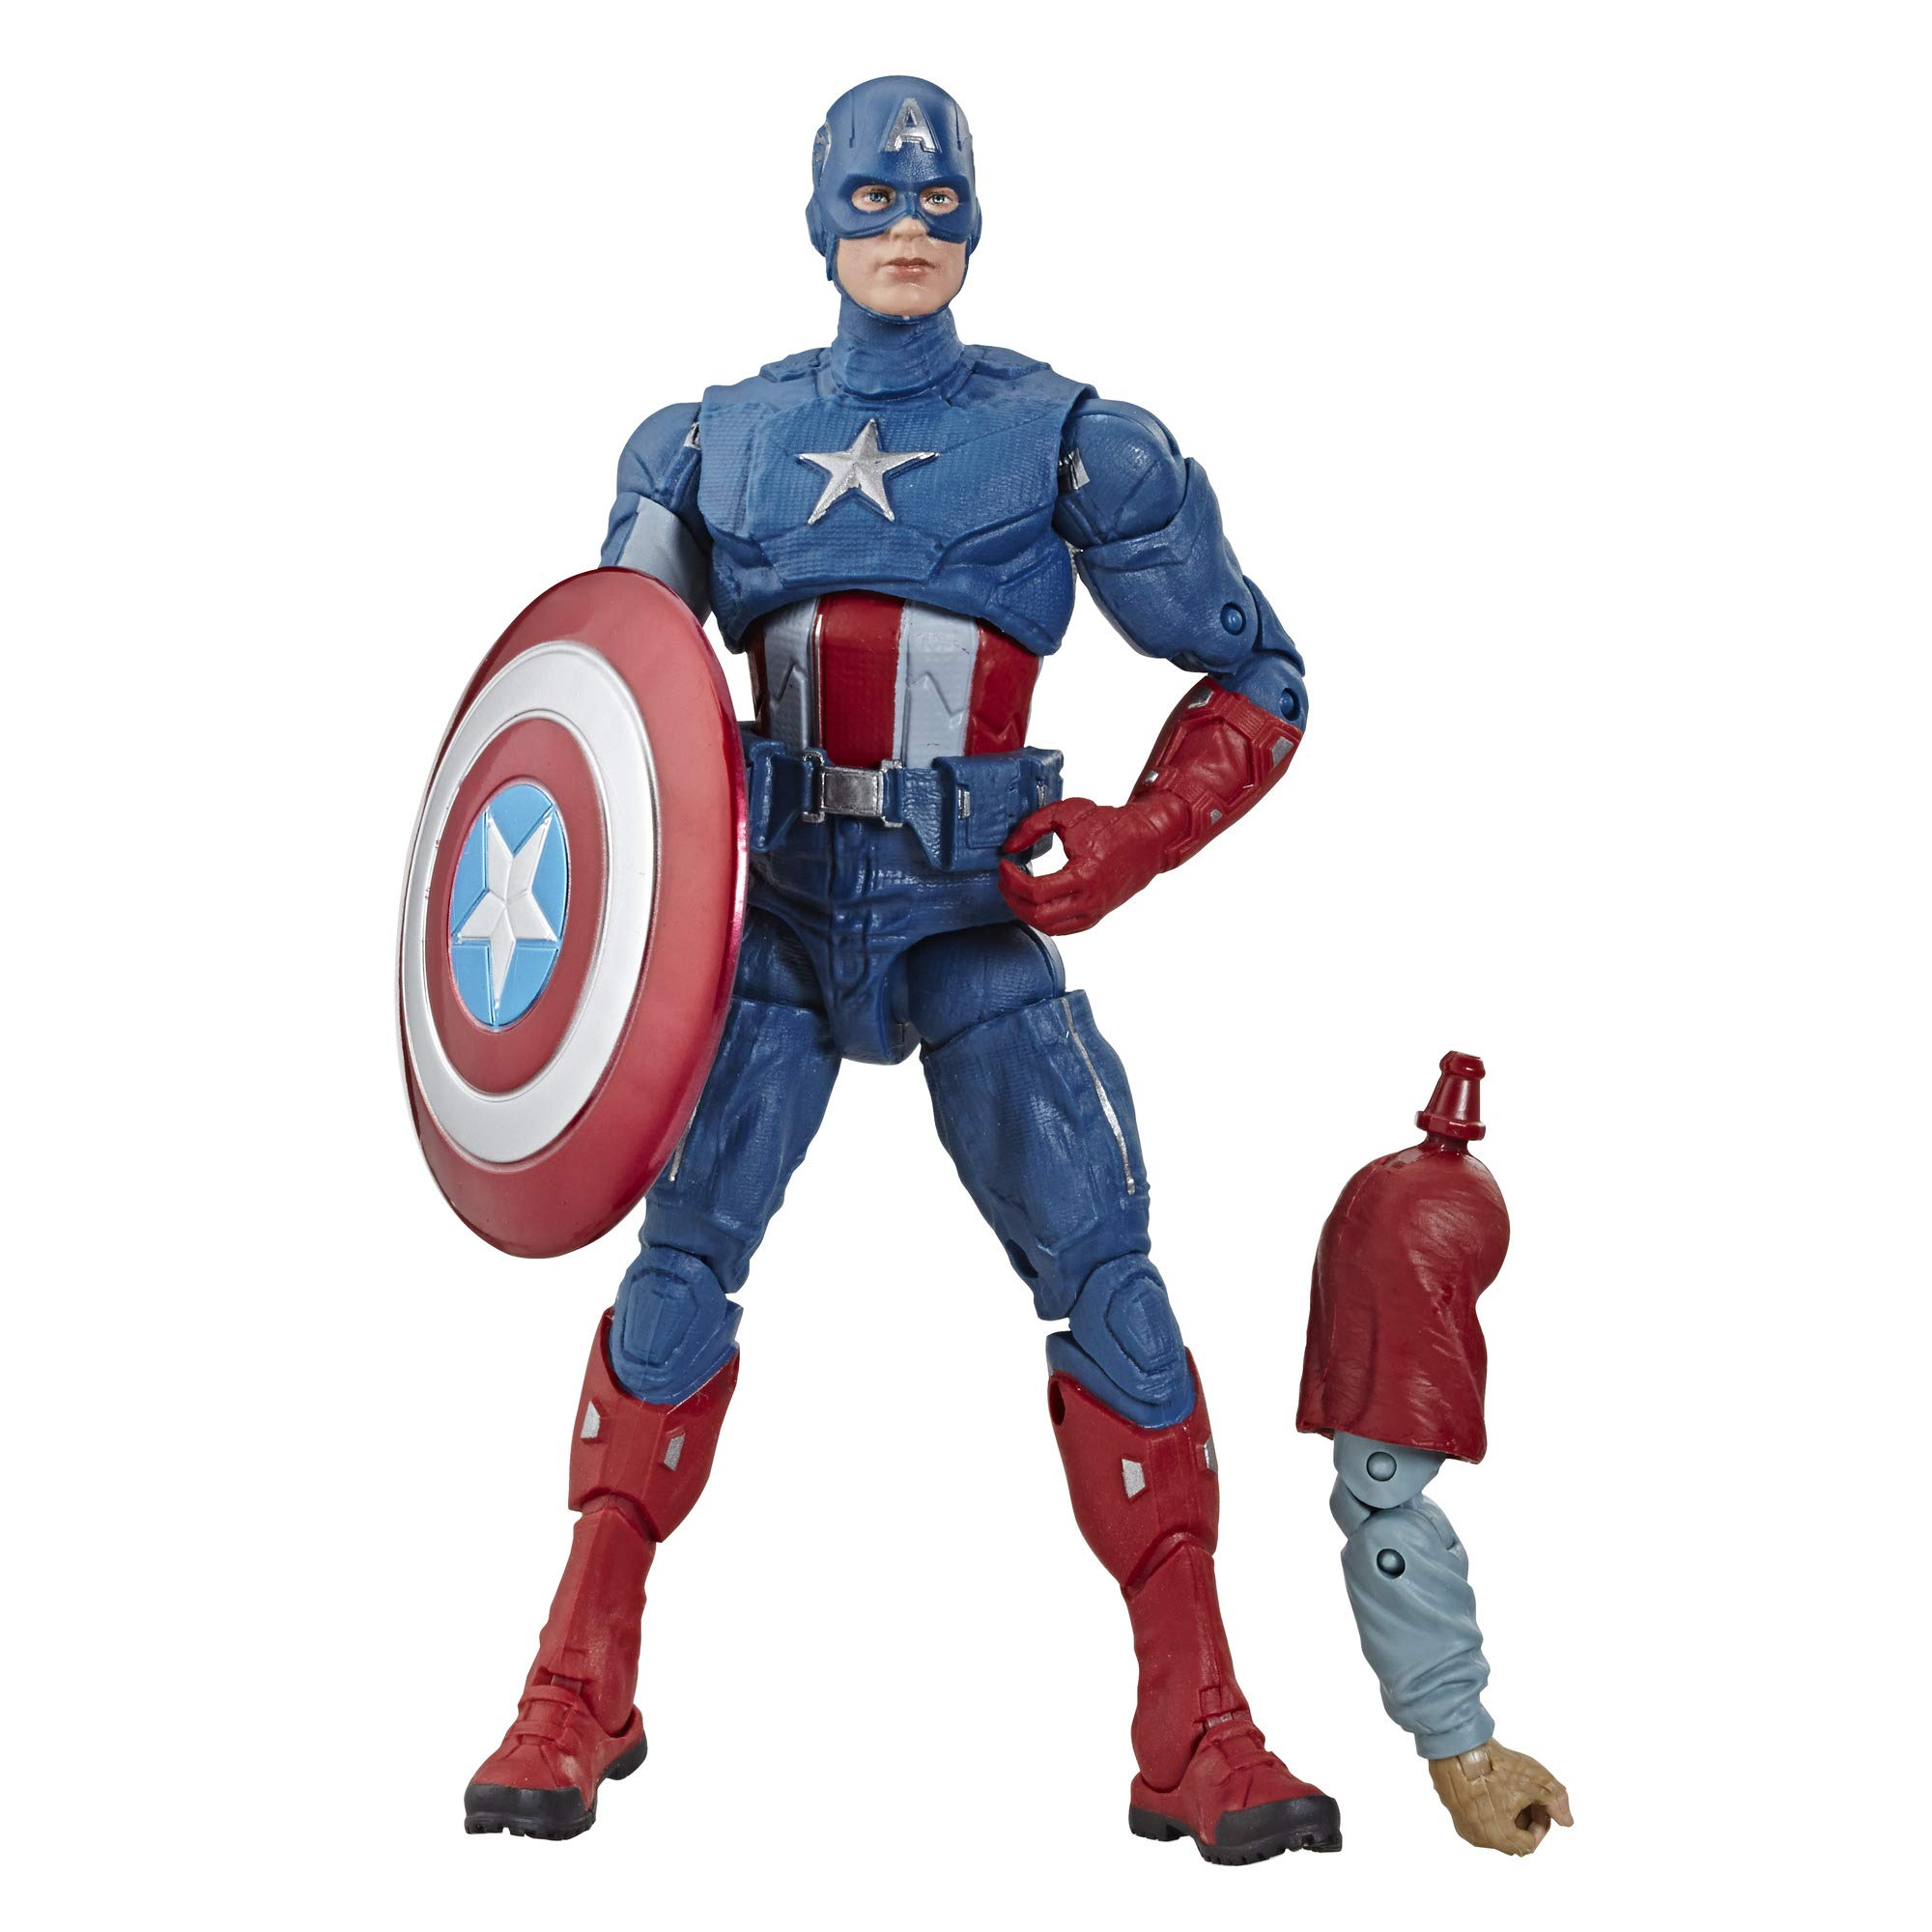 Avengers Marvel Legends Series Endgame 6'' Collectible Action Figure Captain America Collection, Includes 1 Accessory